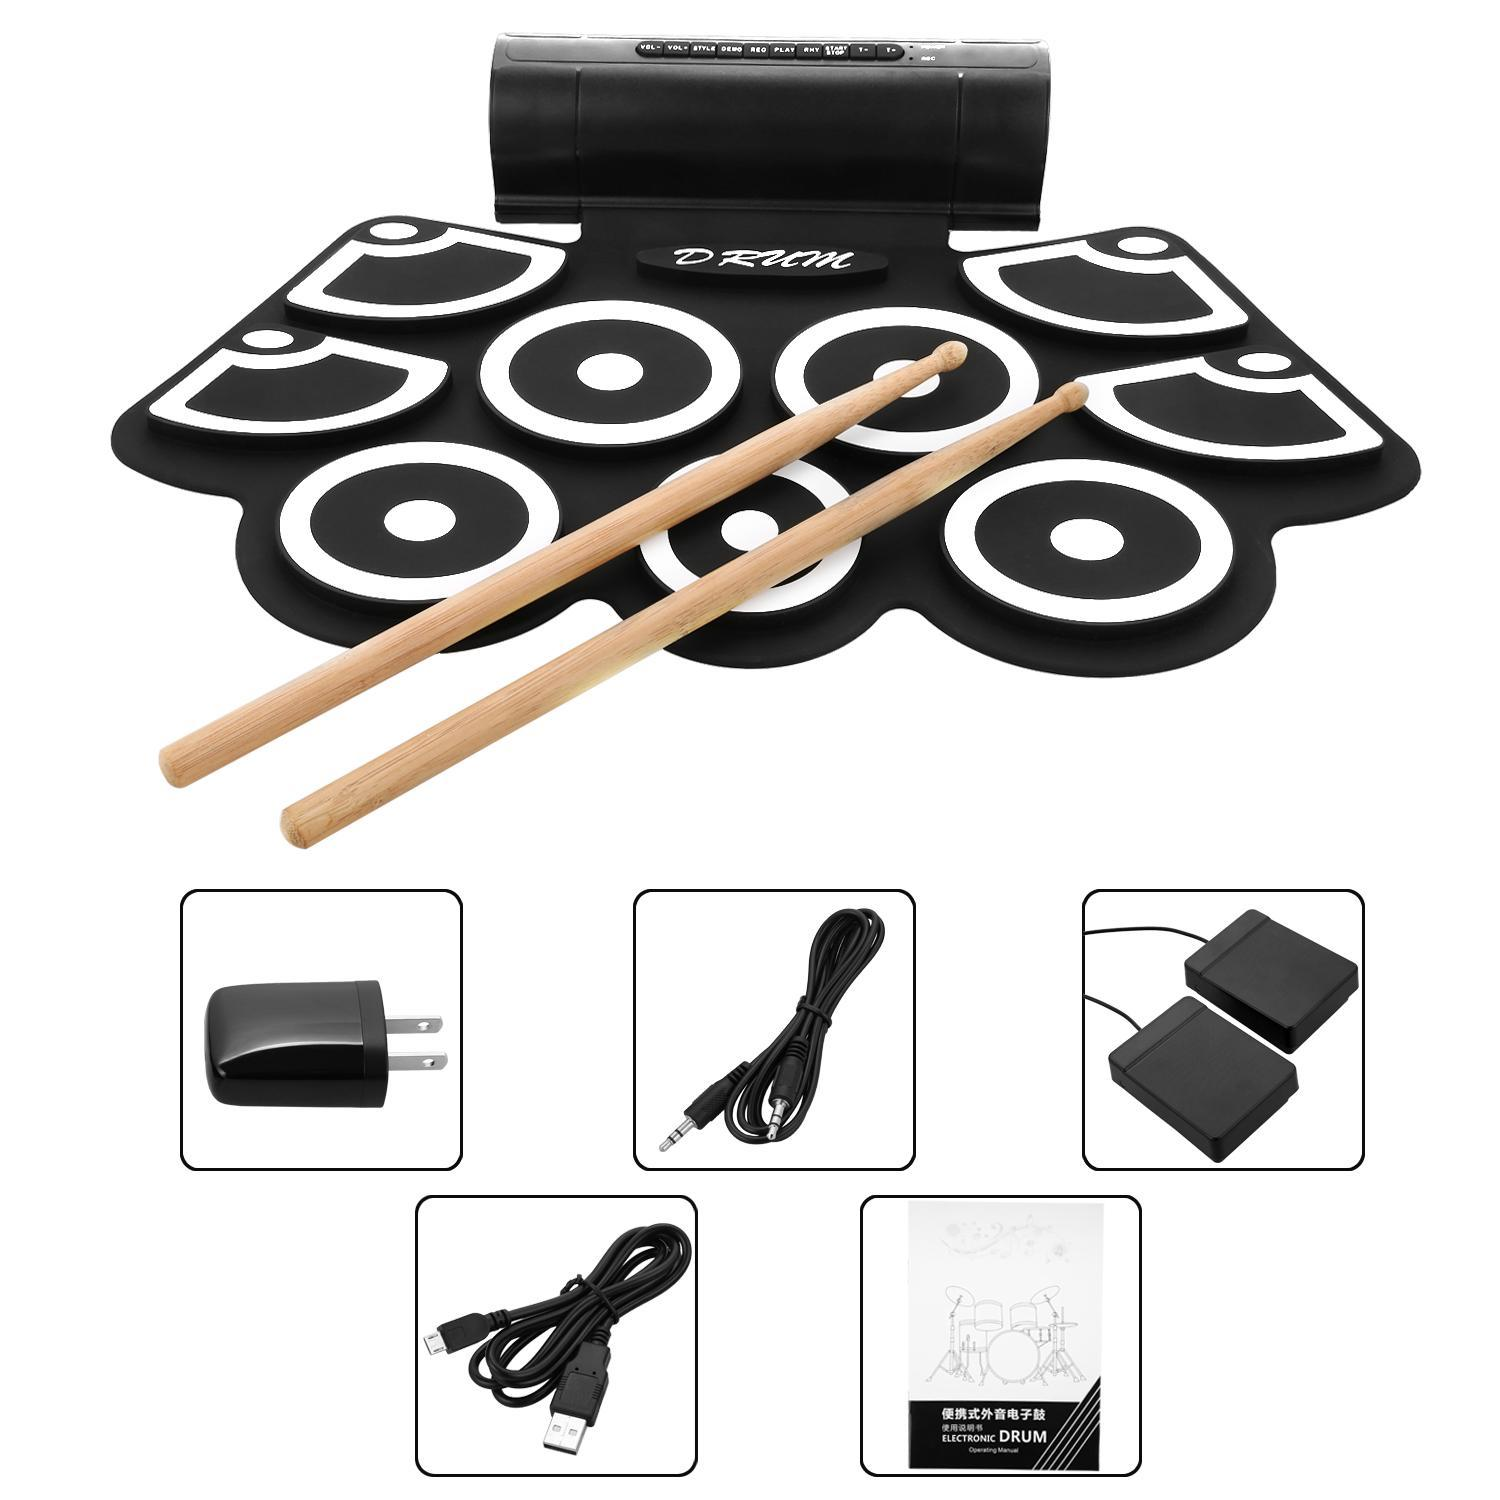 Electronic Drum Set Roll-Up with Built-in Speakers Foot Pedals Drumsticks GlSTE by PyleUSA